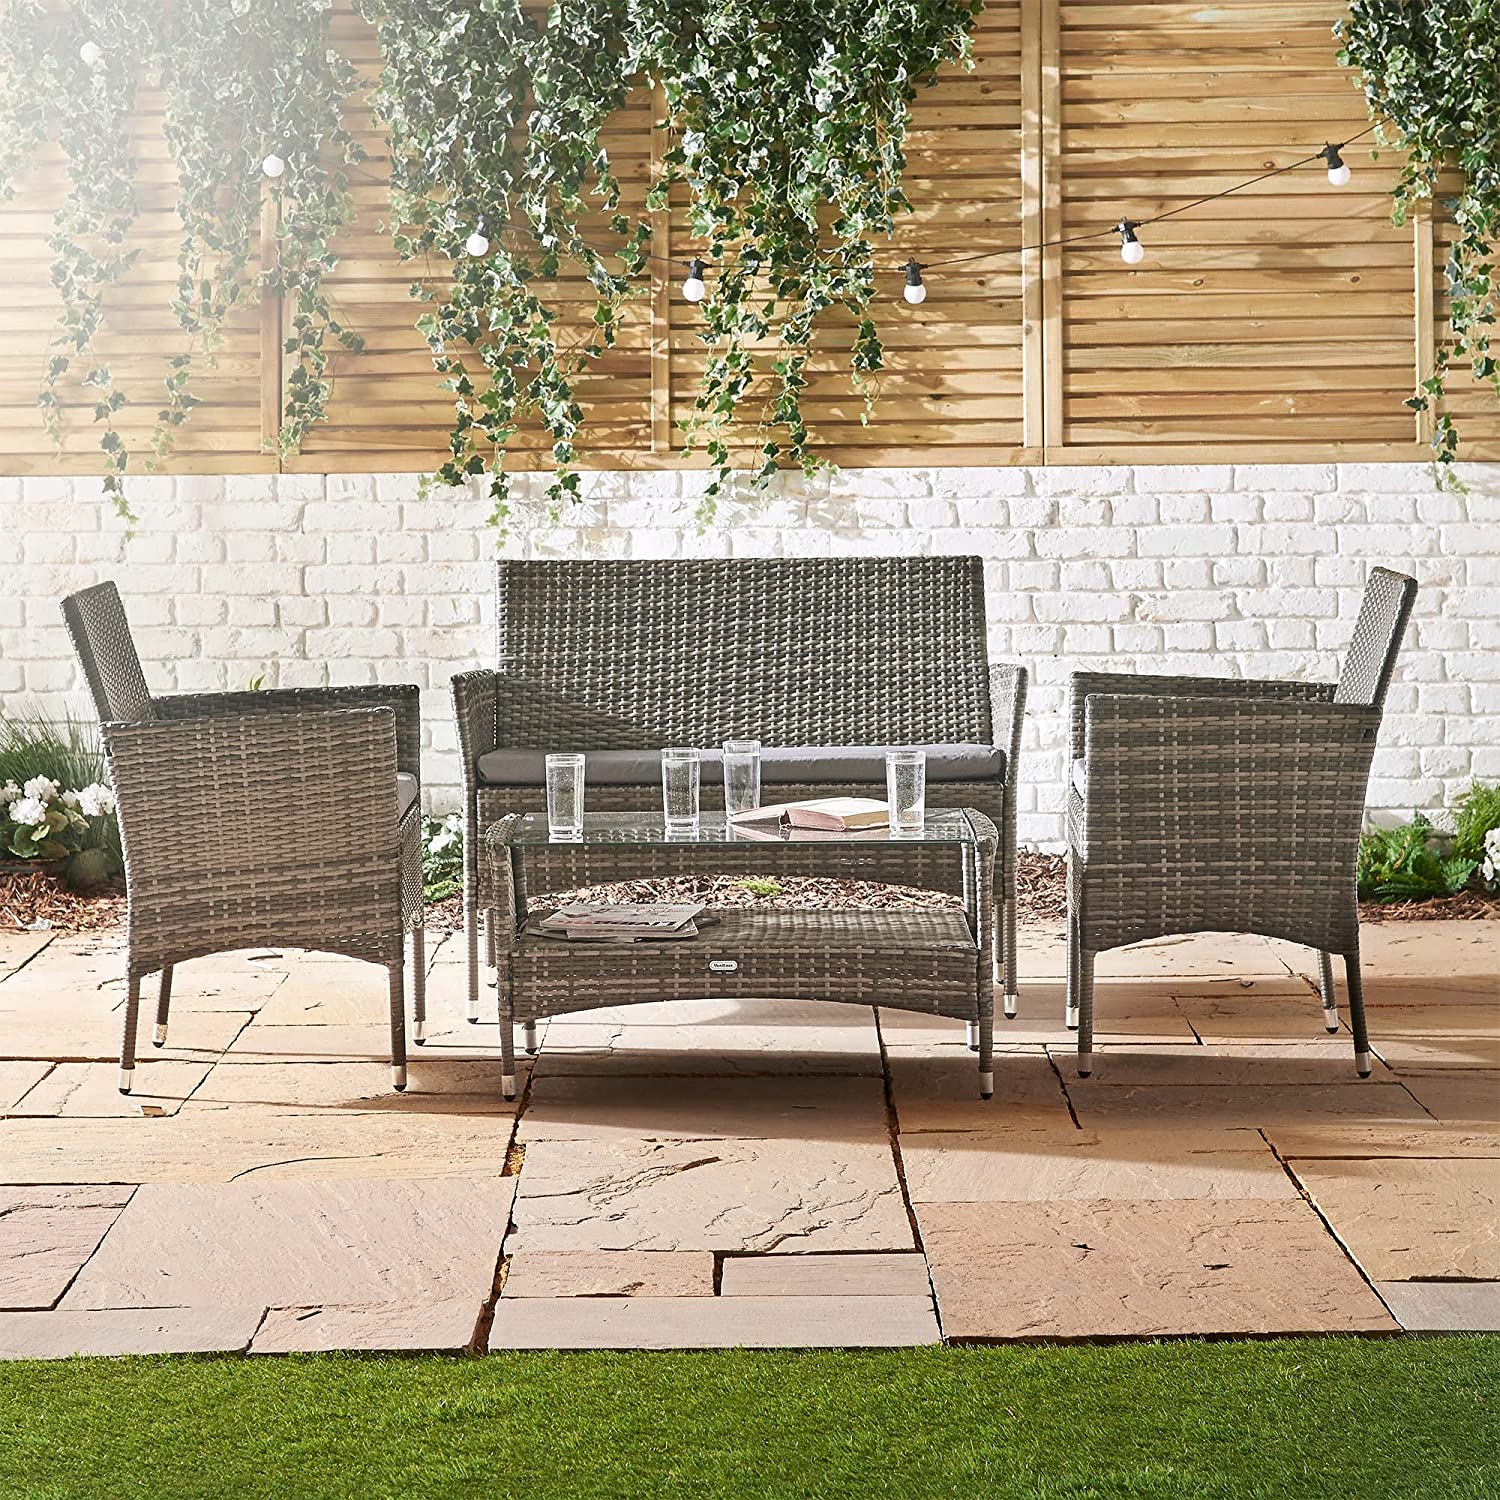 bench furniture set rocking baskets awesome recycled picture vanity chair wicker rattan stunning childs storage dining on white patio resin most backyard clearance amazon wic